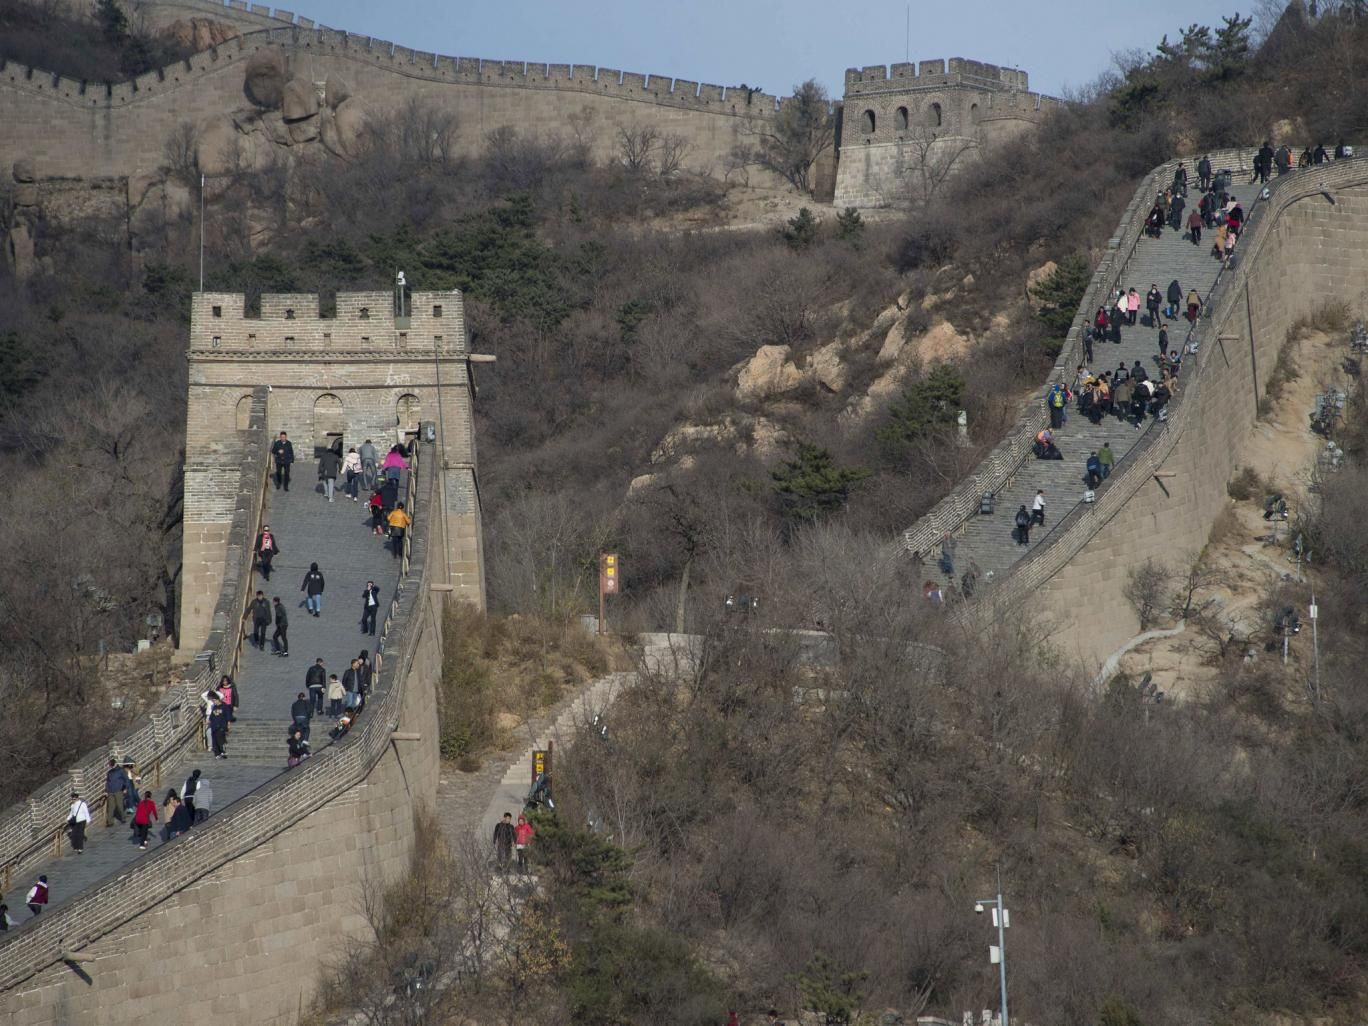 People walk along a section of the Great Wall of China at Badaling, north of Beijing, on November 11, 2014.